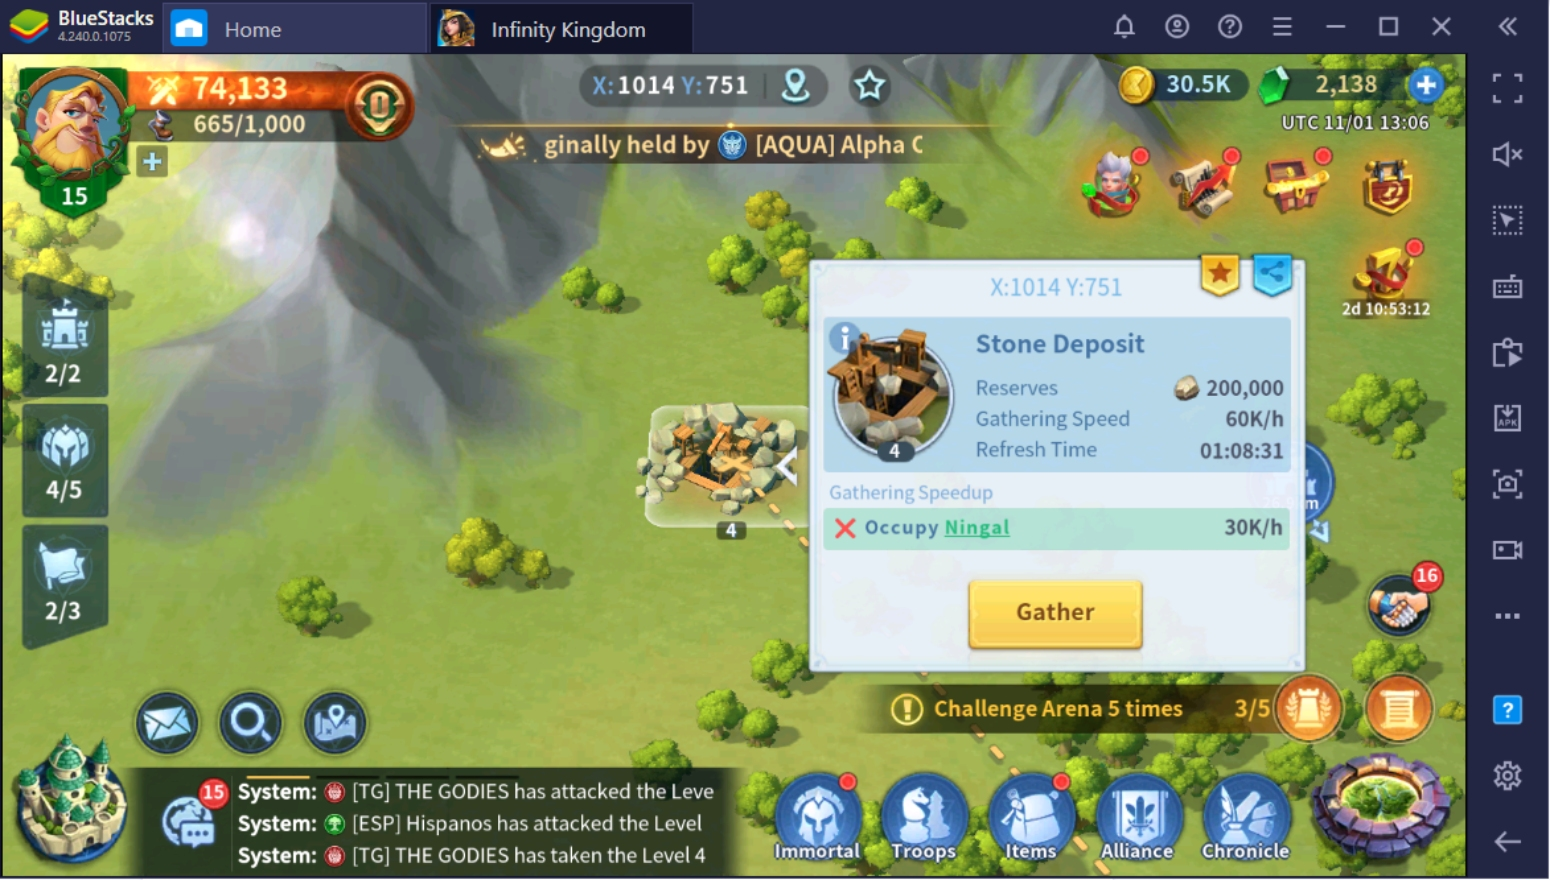 How To Get More Resources In Infinity Kingdom On PC